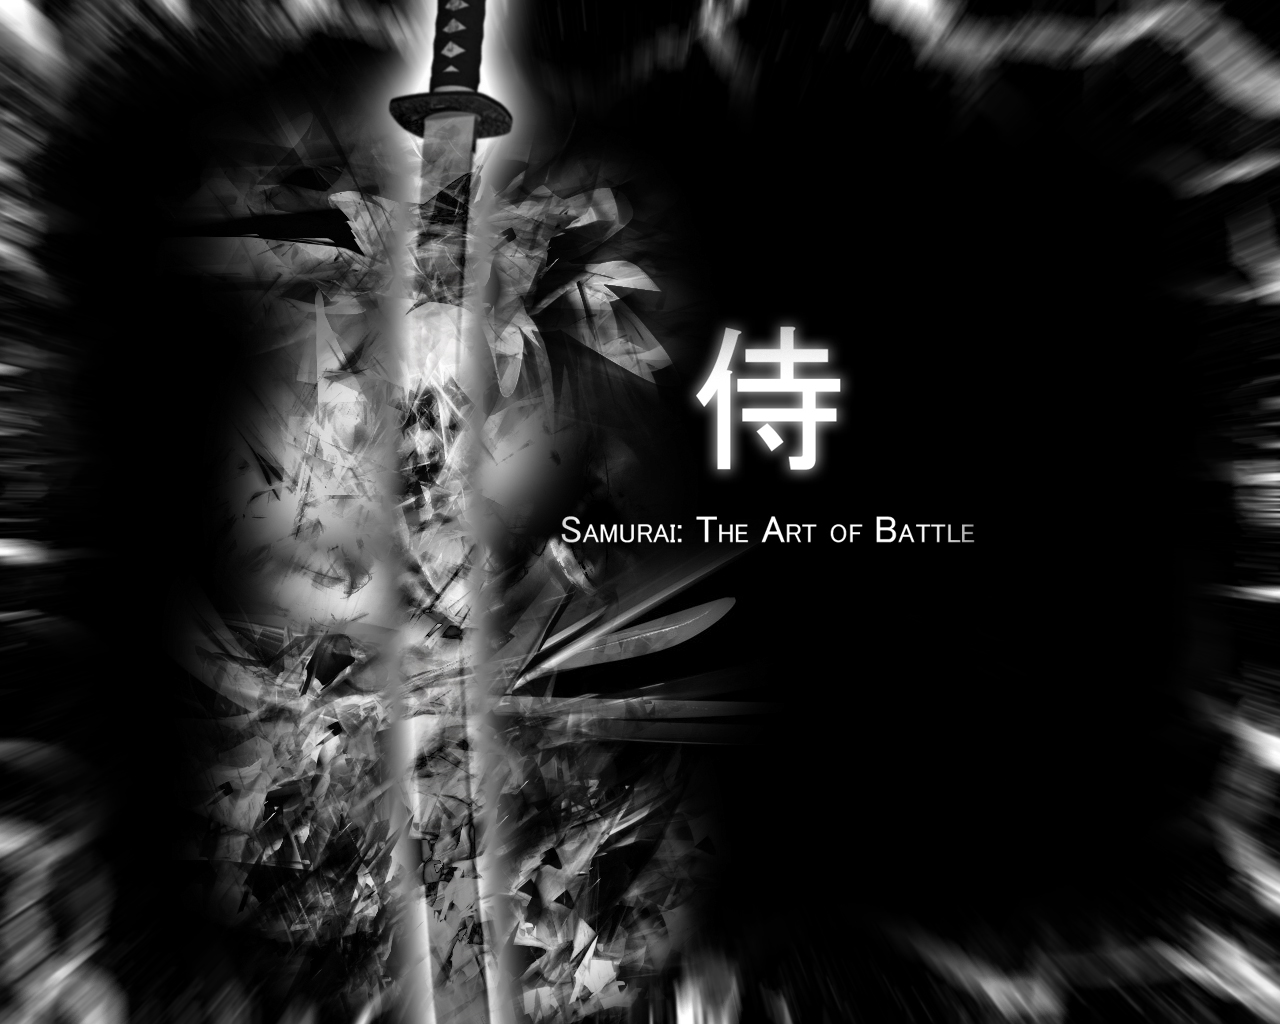 Japanese Samurai Art Hd Desktop Wallpaper For Tablet